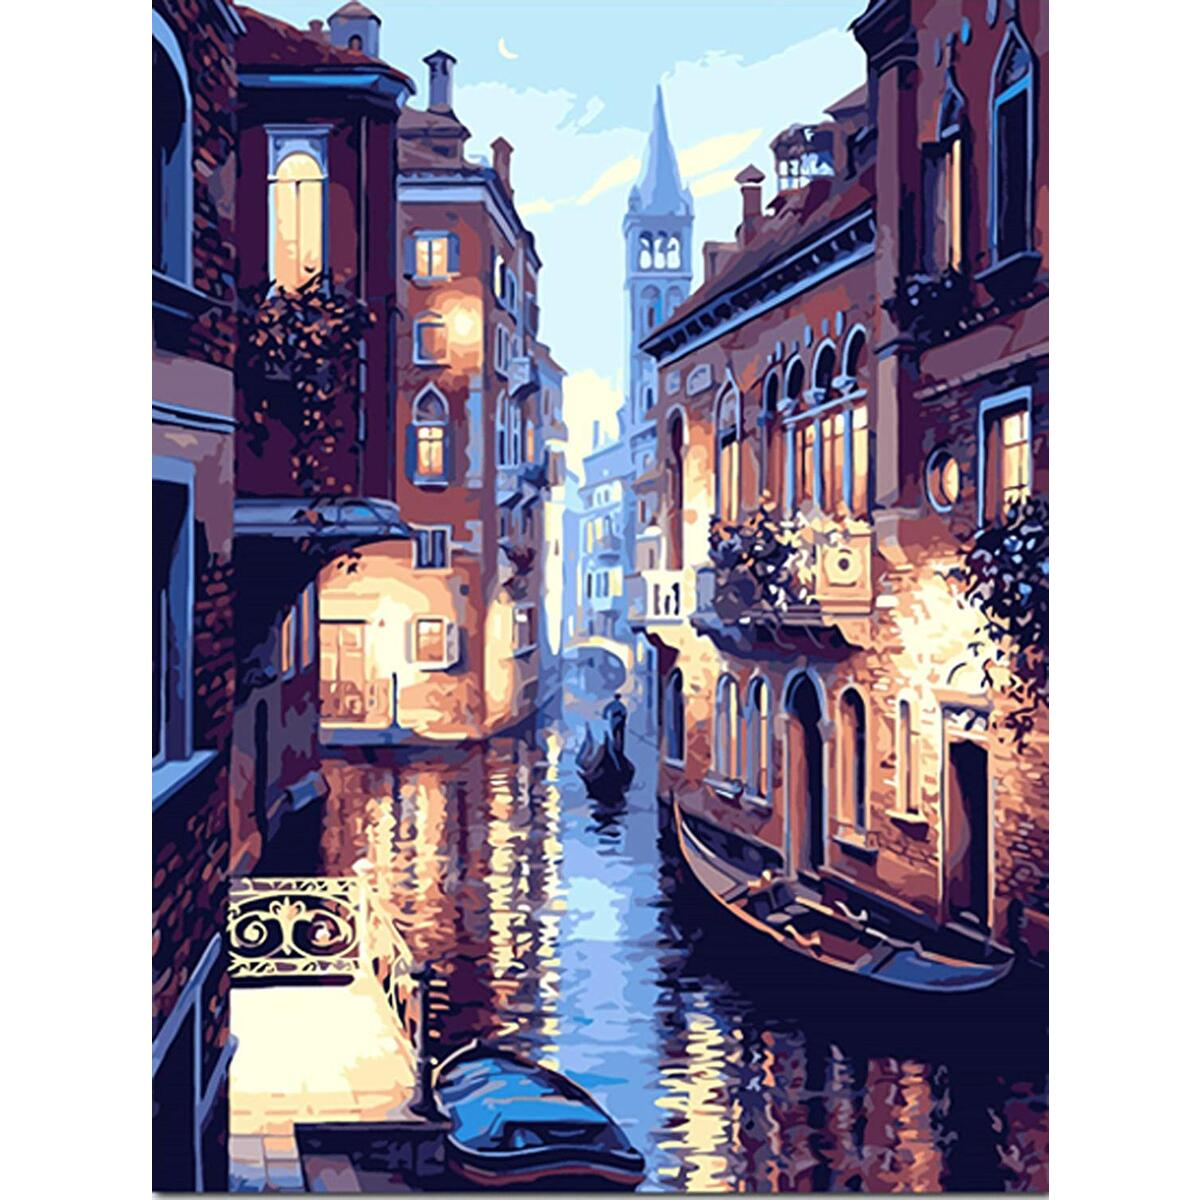 Paint by Numbers Venice Framed Canvas Photo of Canals at Night in Venezia Italy